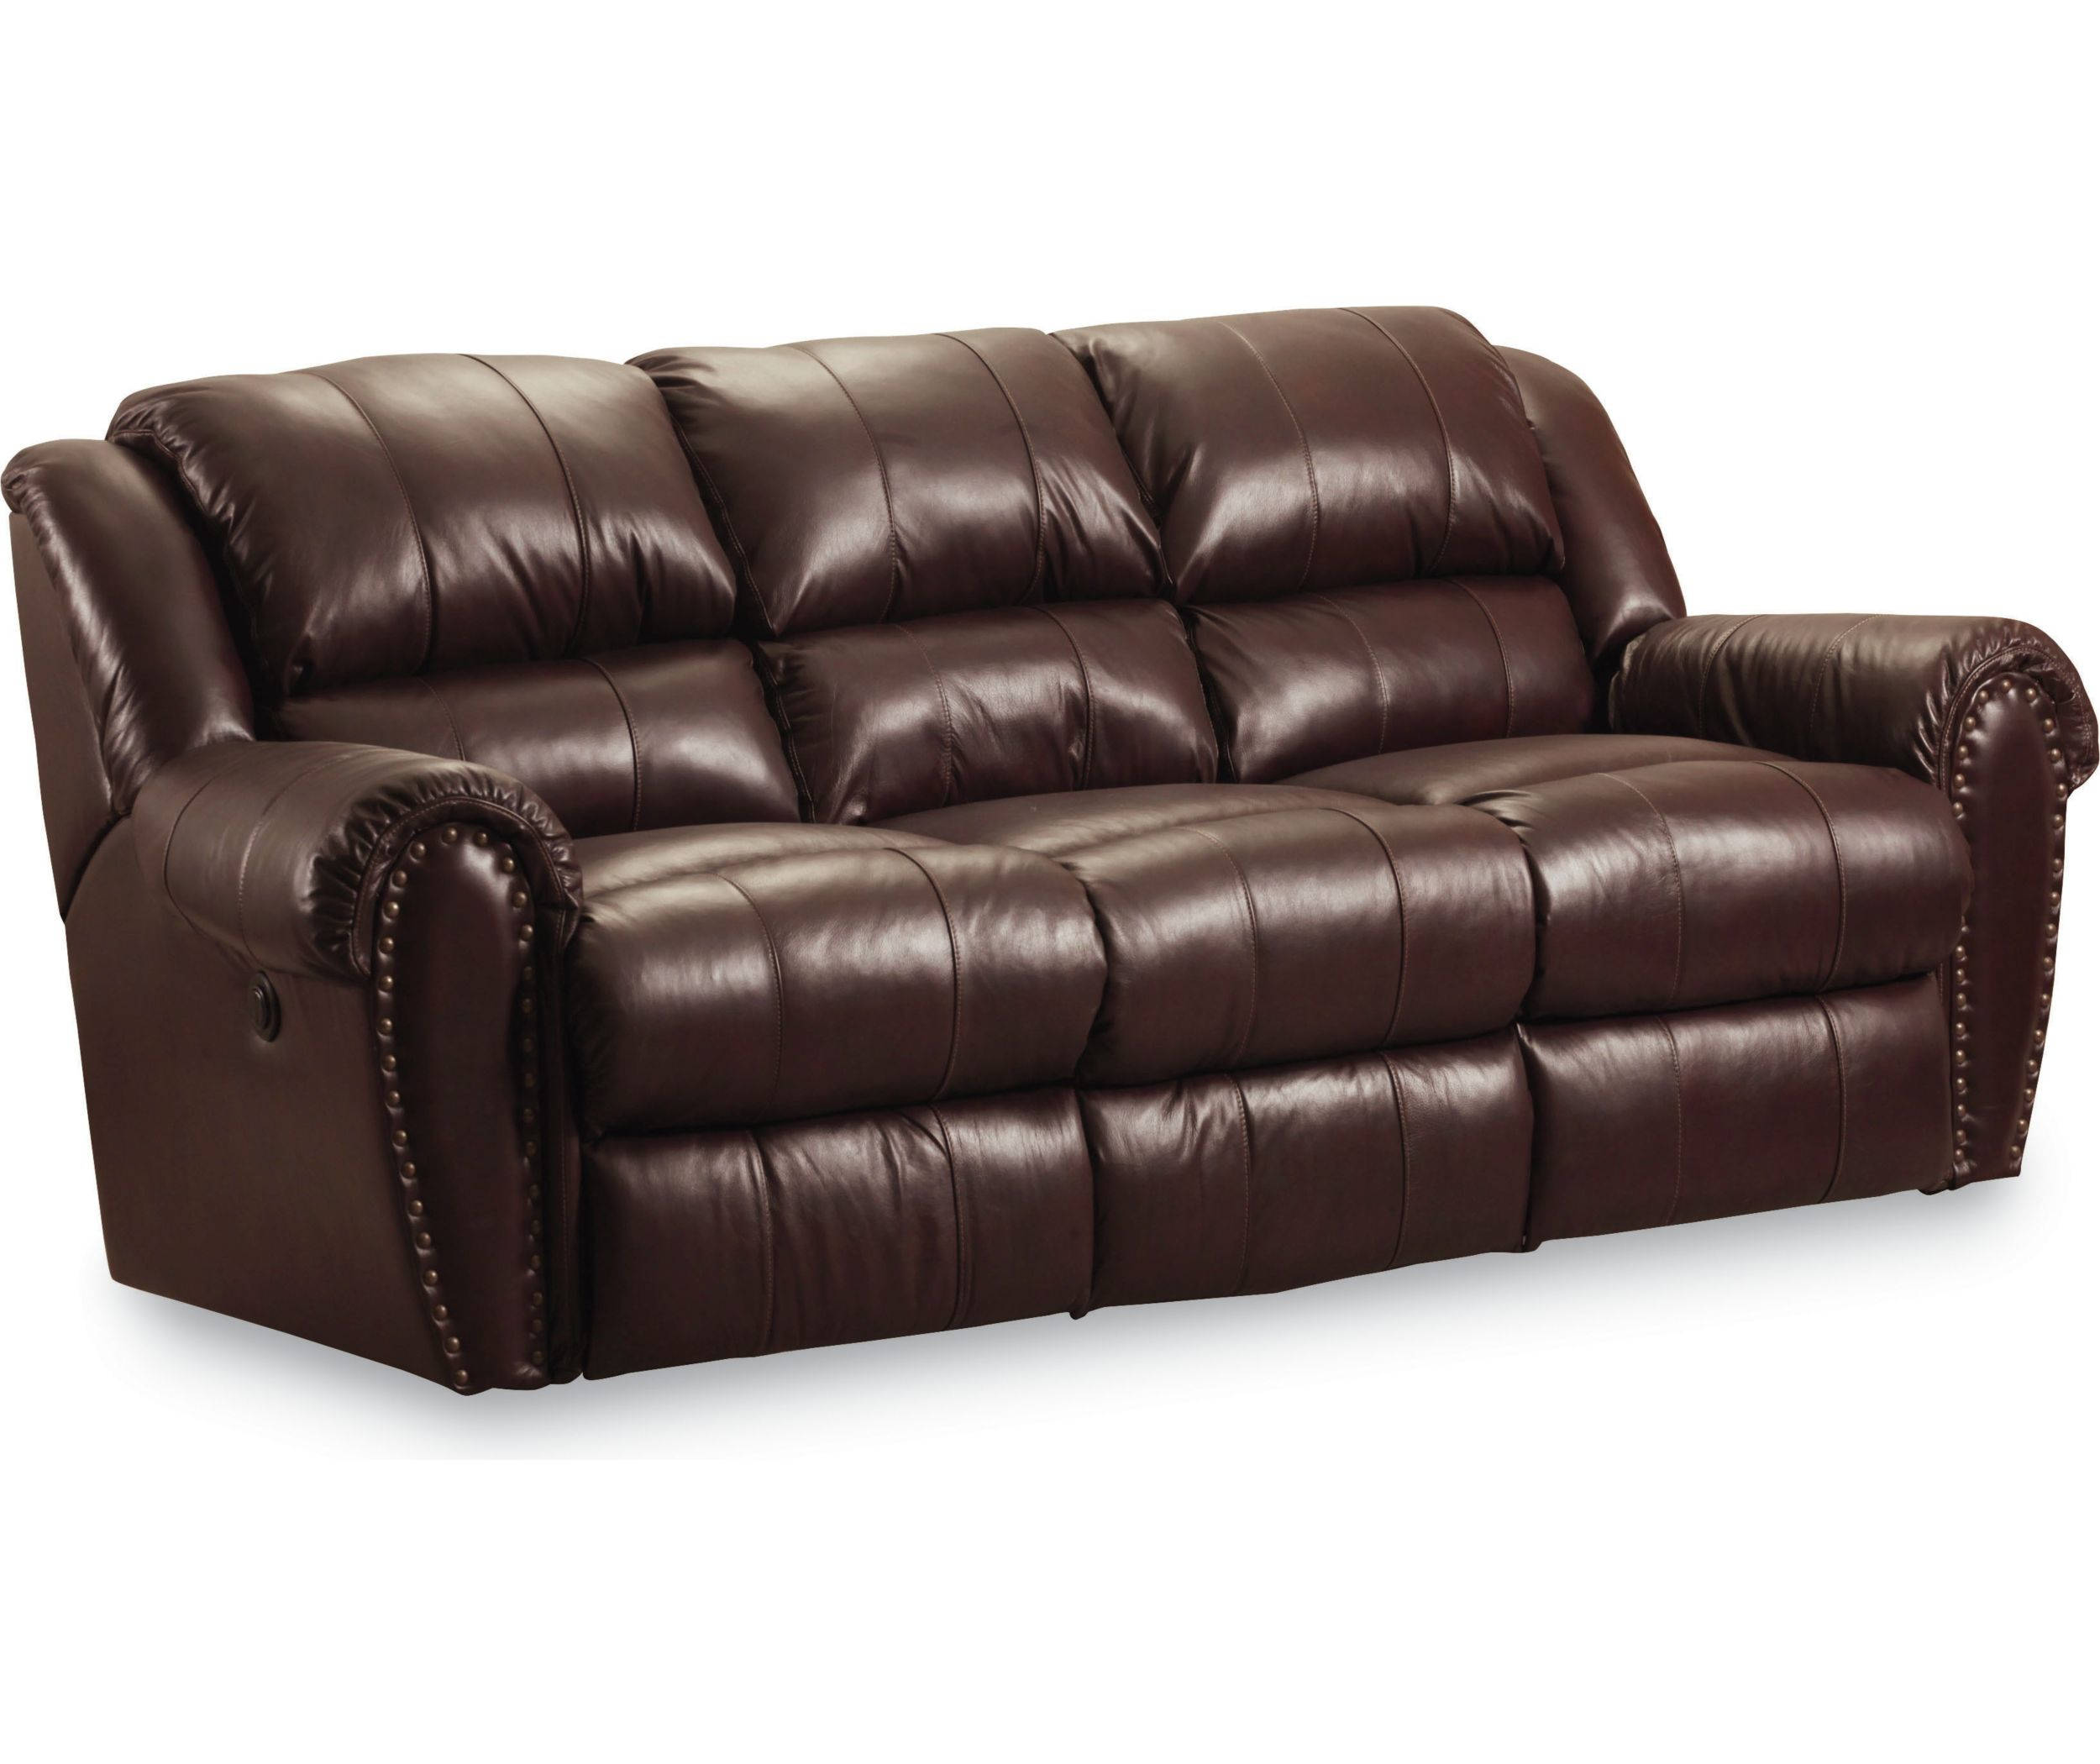 Summerlin Traditional Brown Leather Power Double Reclining